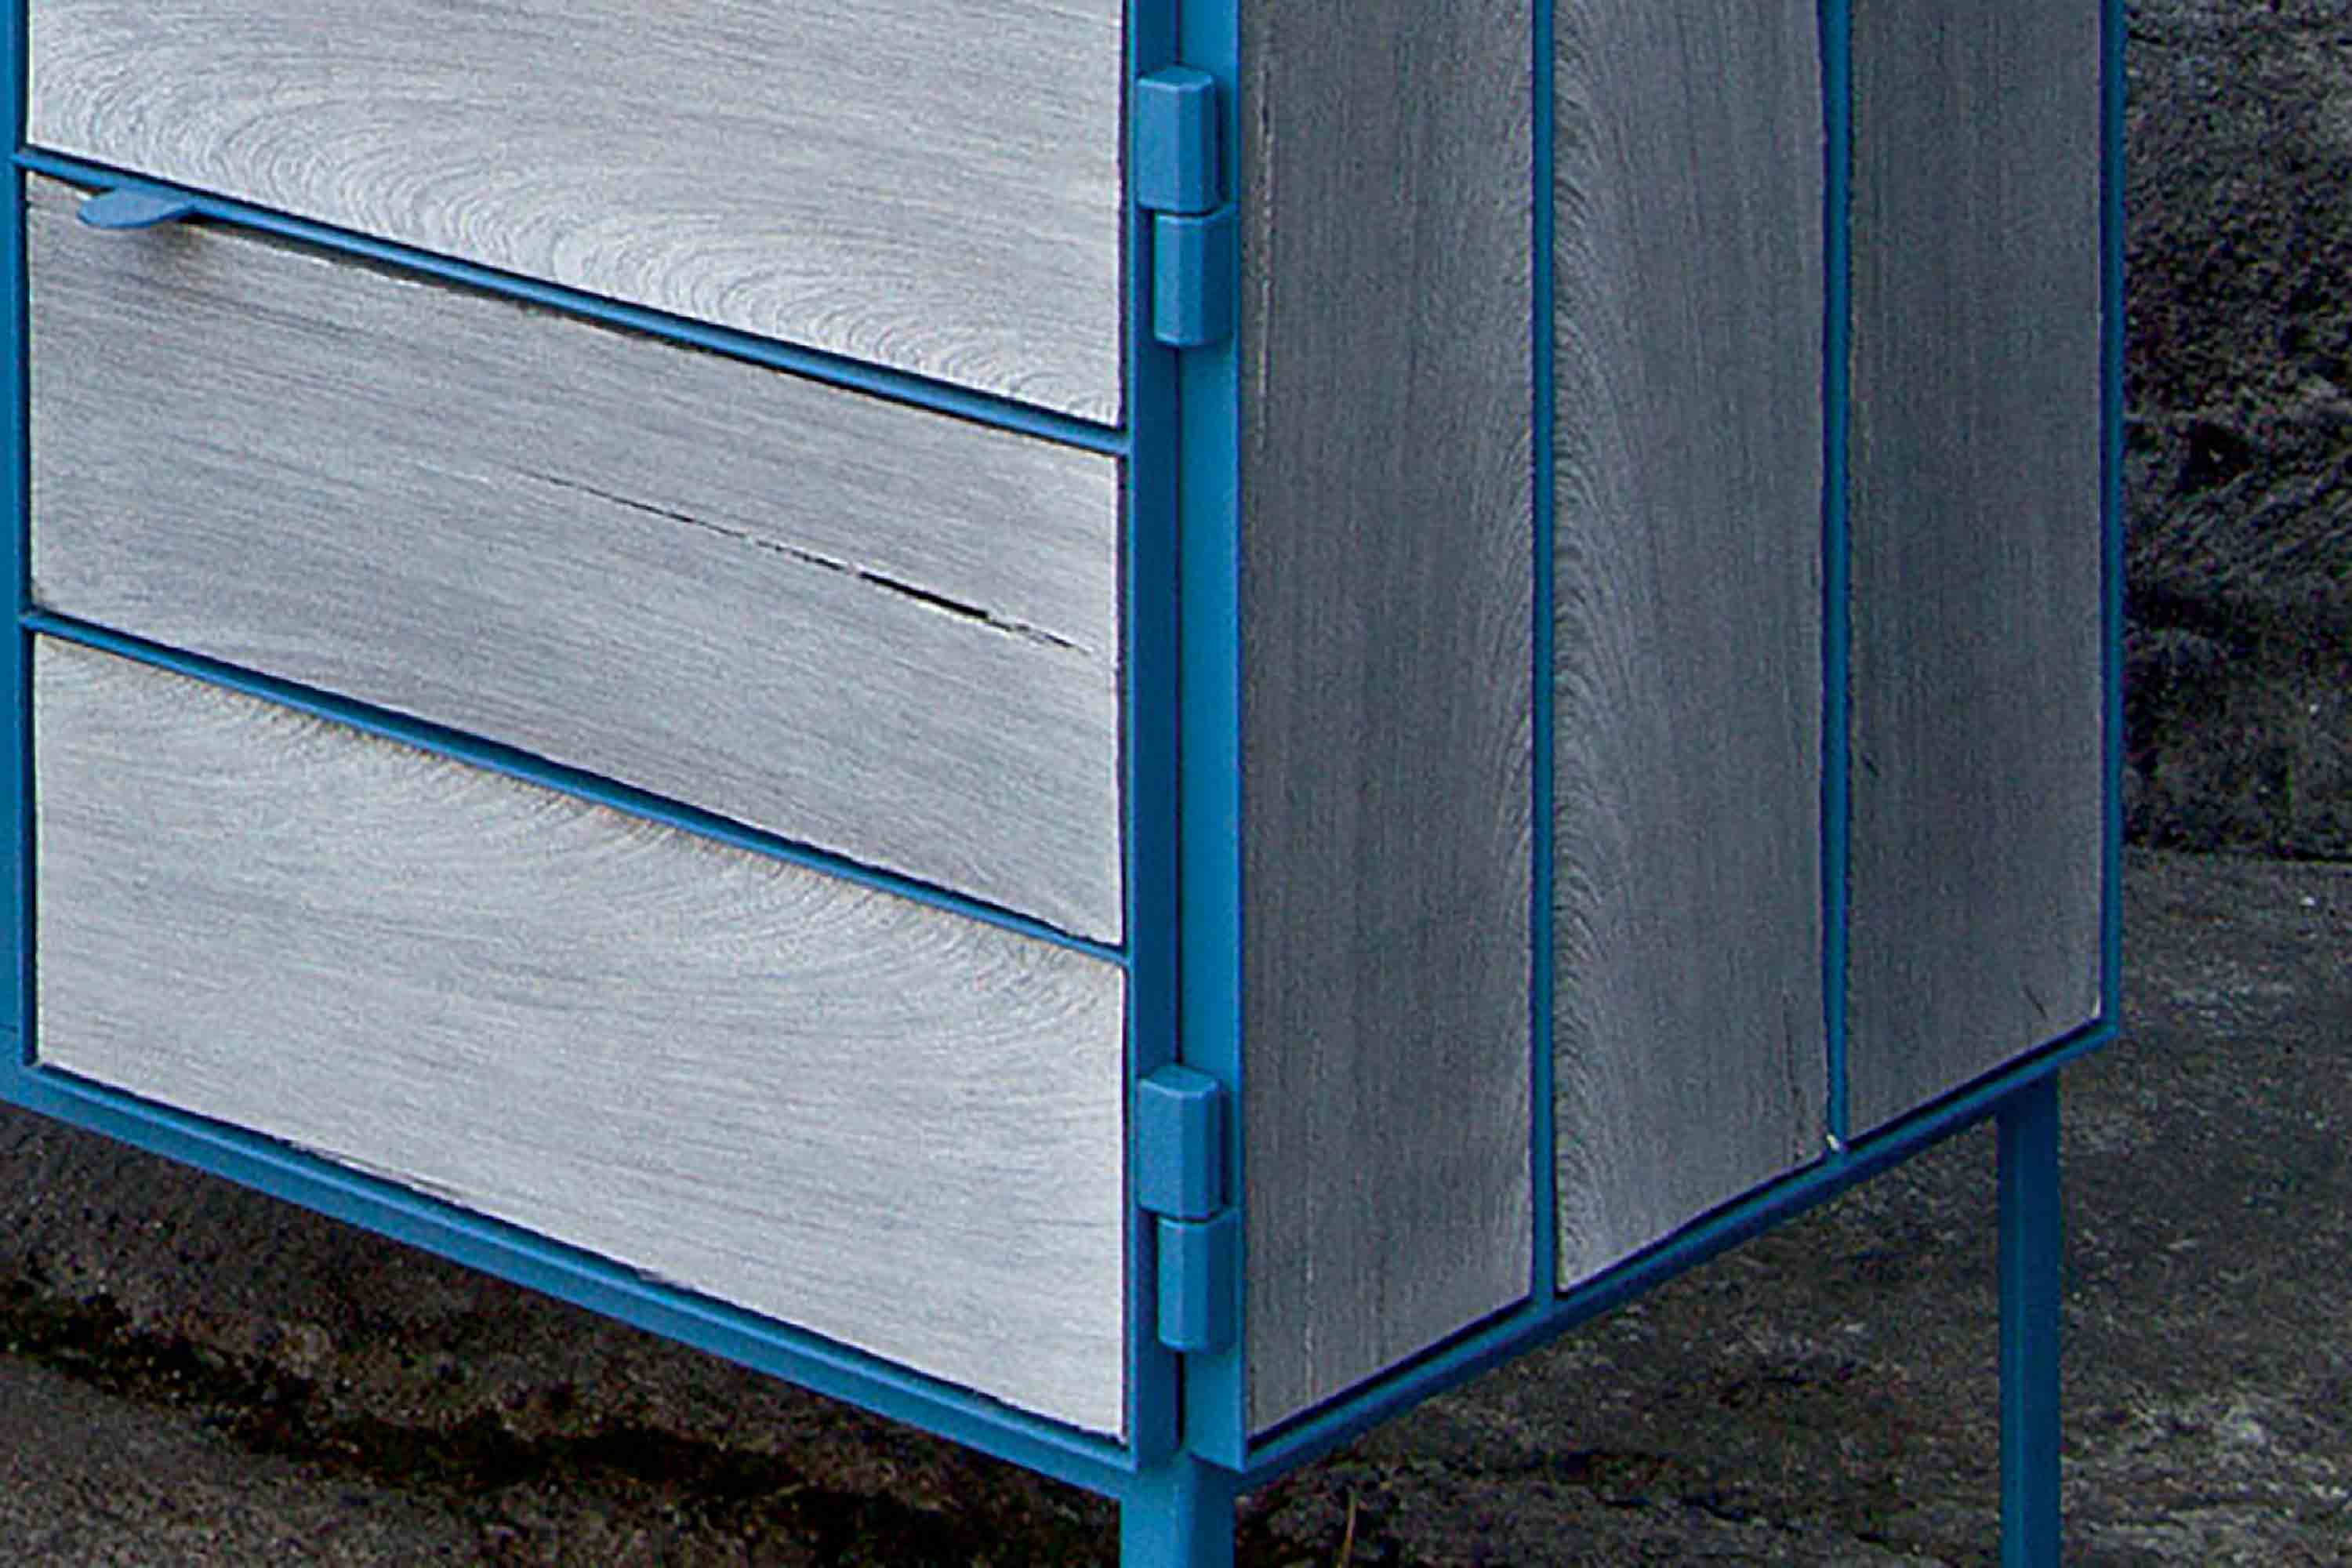 Hanssen_Breg_Framed-cabinet_01_PRESS-detail